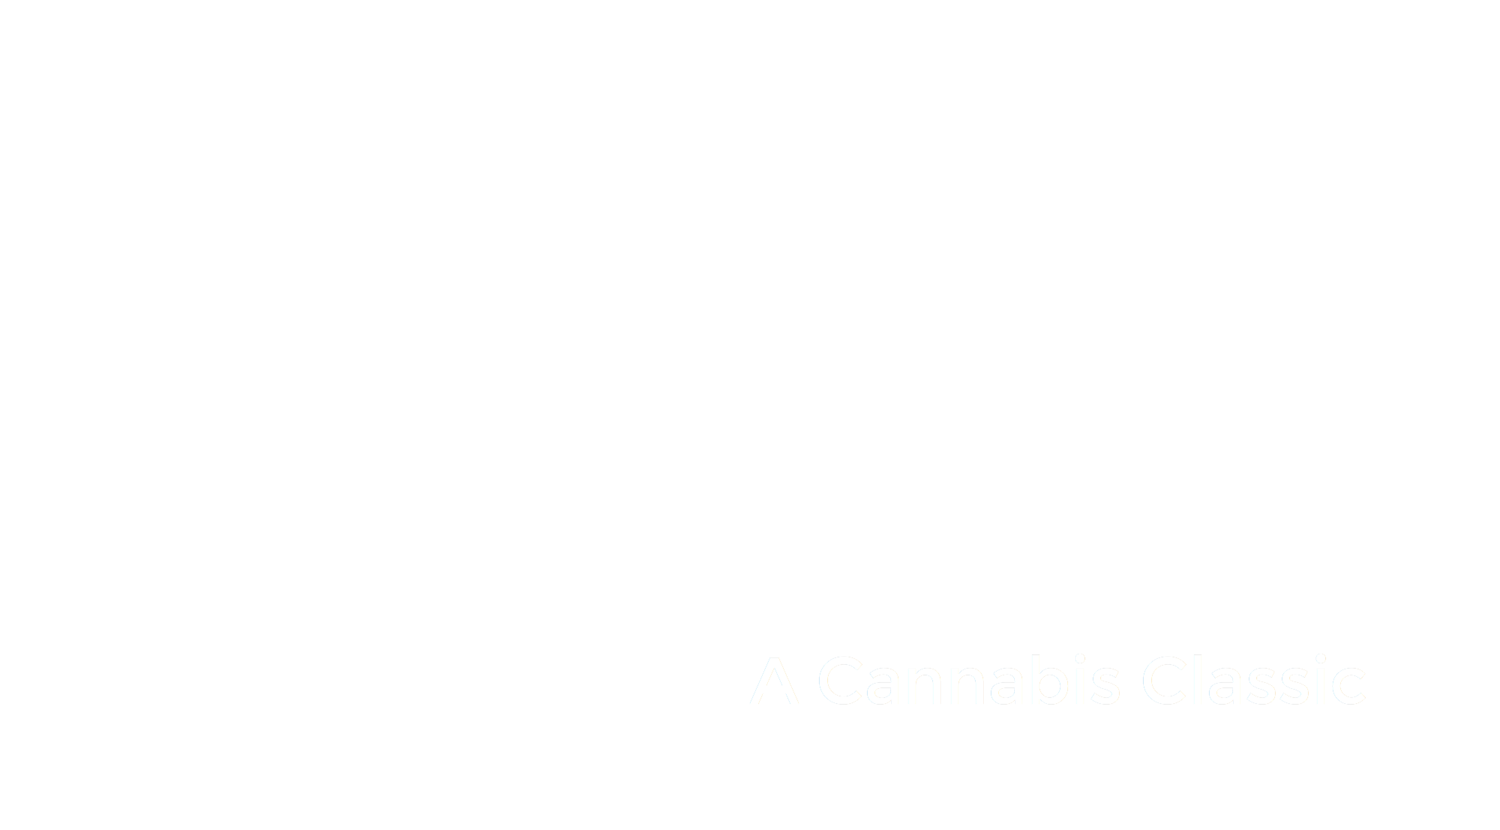 Green Life NW